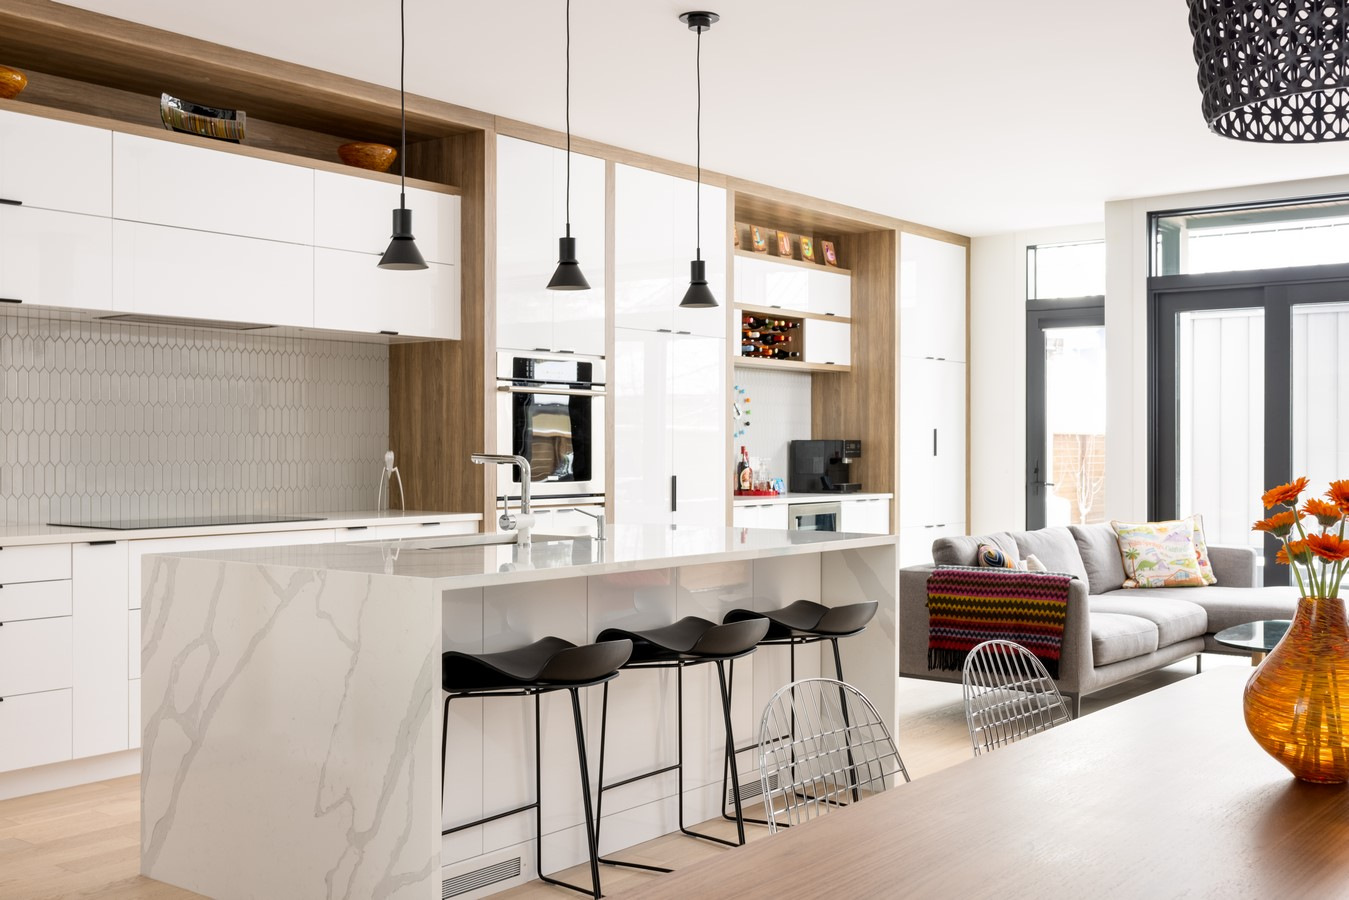 Kensington 11 by Alloy Homes Incorporated - Sheet1